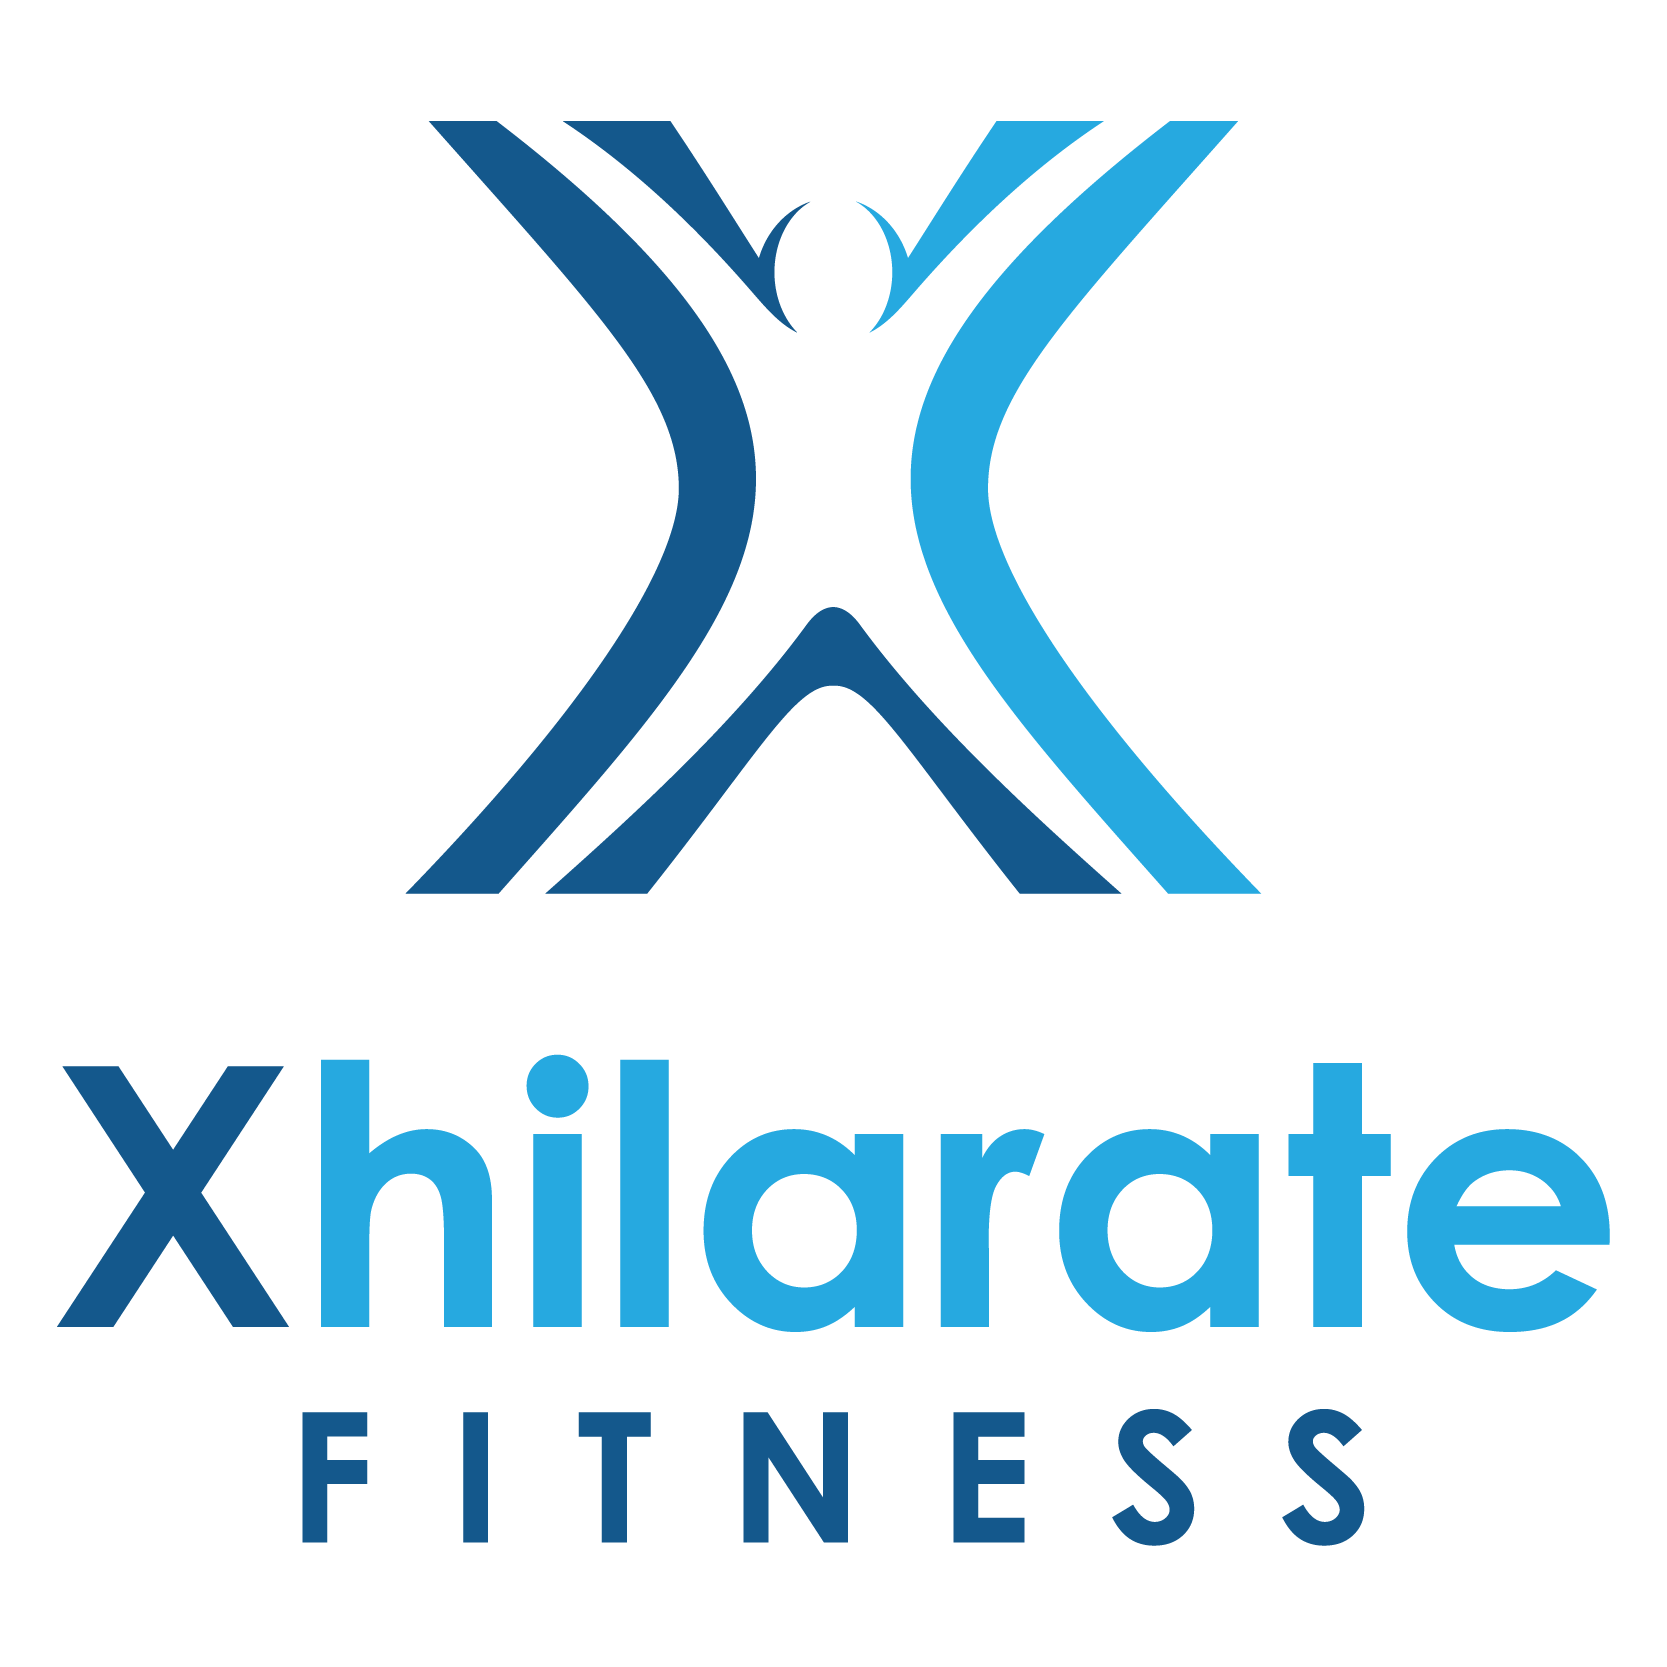 Xhilarate Fitness needs a stand out logo where people will come to know it just by the 'X'. The 'X' needs to come alive